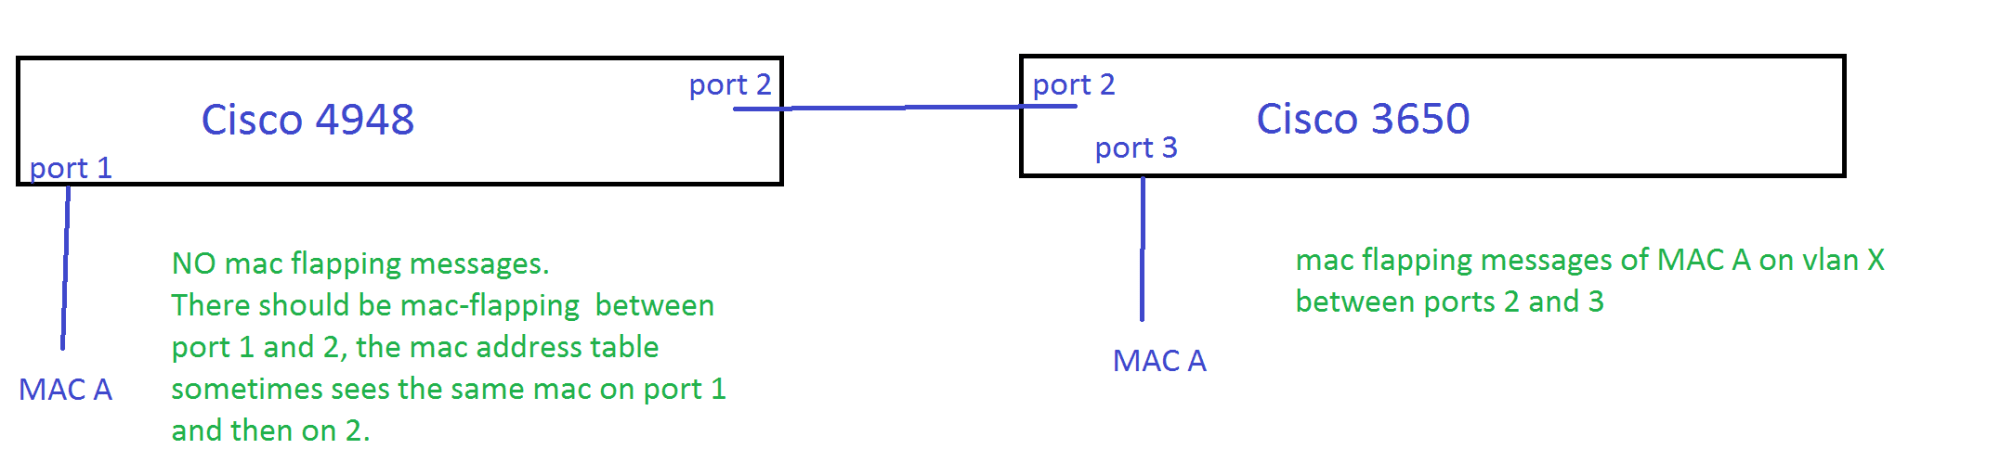 hight resolution of mac address cisco switch not showing mac flapping mac address block diagram mac address example